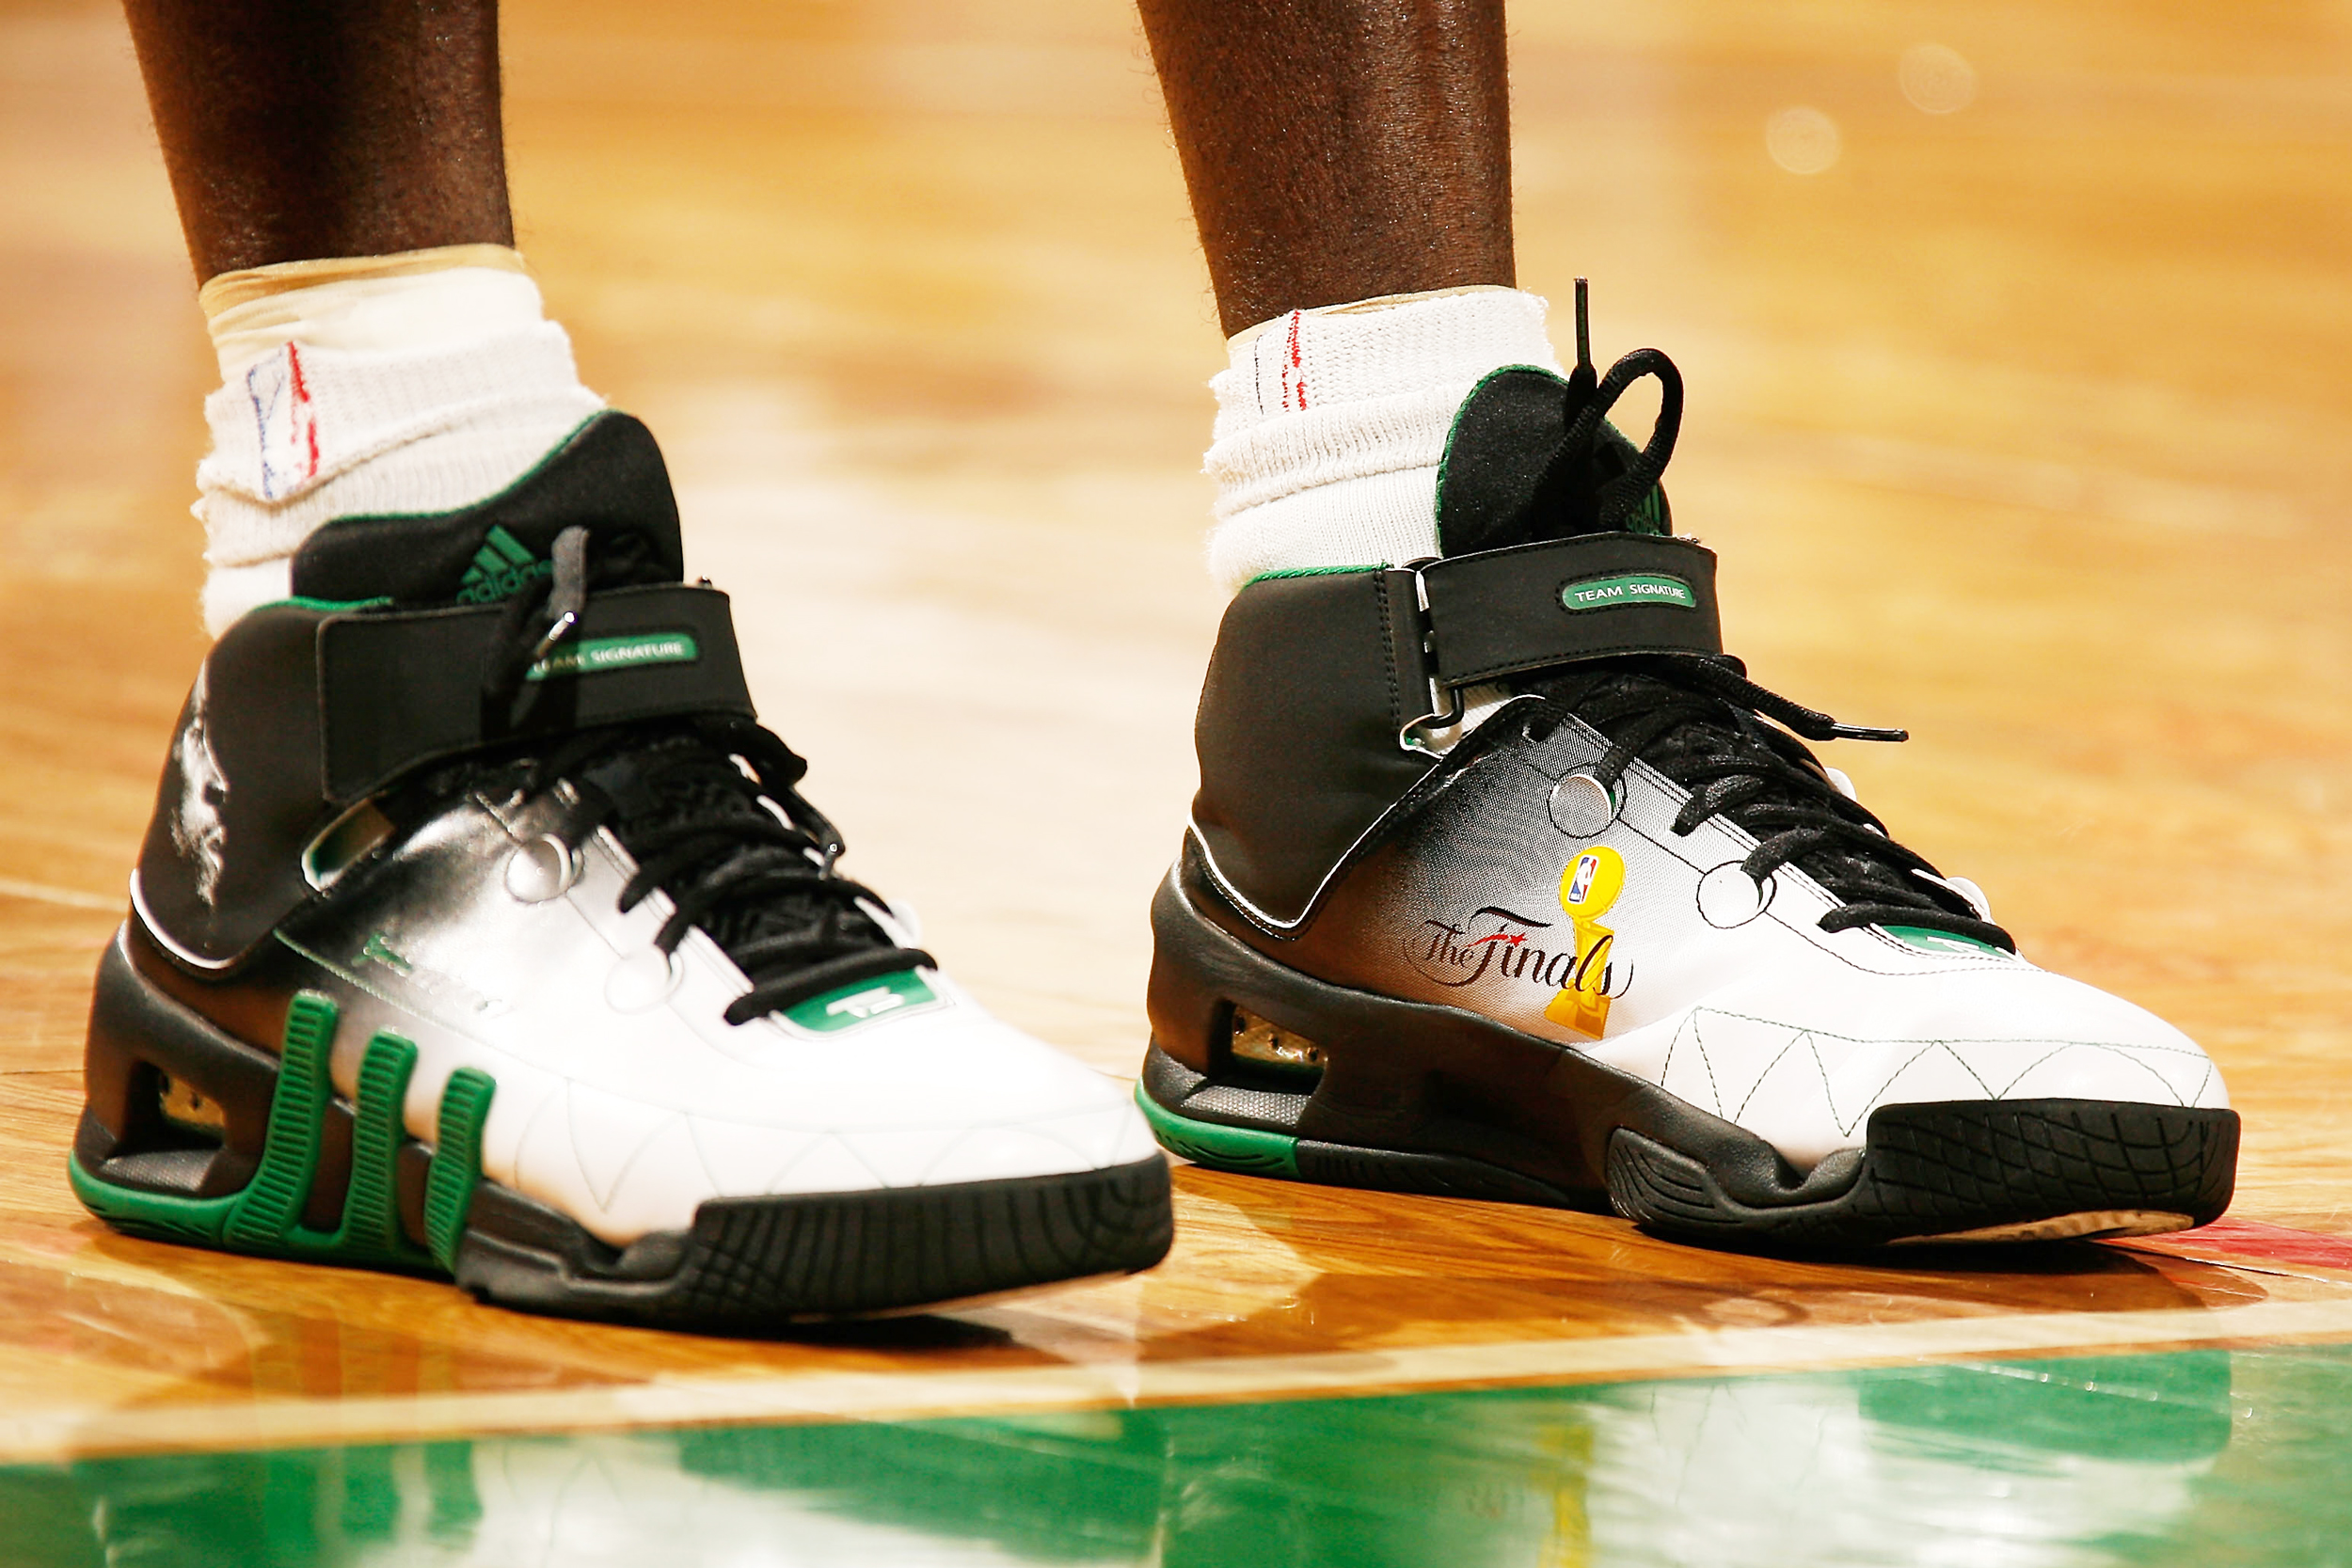 84dc0d65a21471 Kevin Garnett of the Boston Celtics wears a pair of unique Adidas sneakers  in honor of the 2008 NBA Finals against the Los Angeles Lakers on June 17